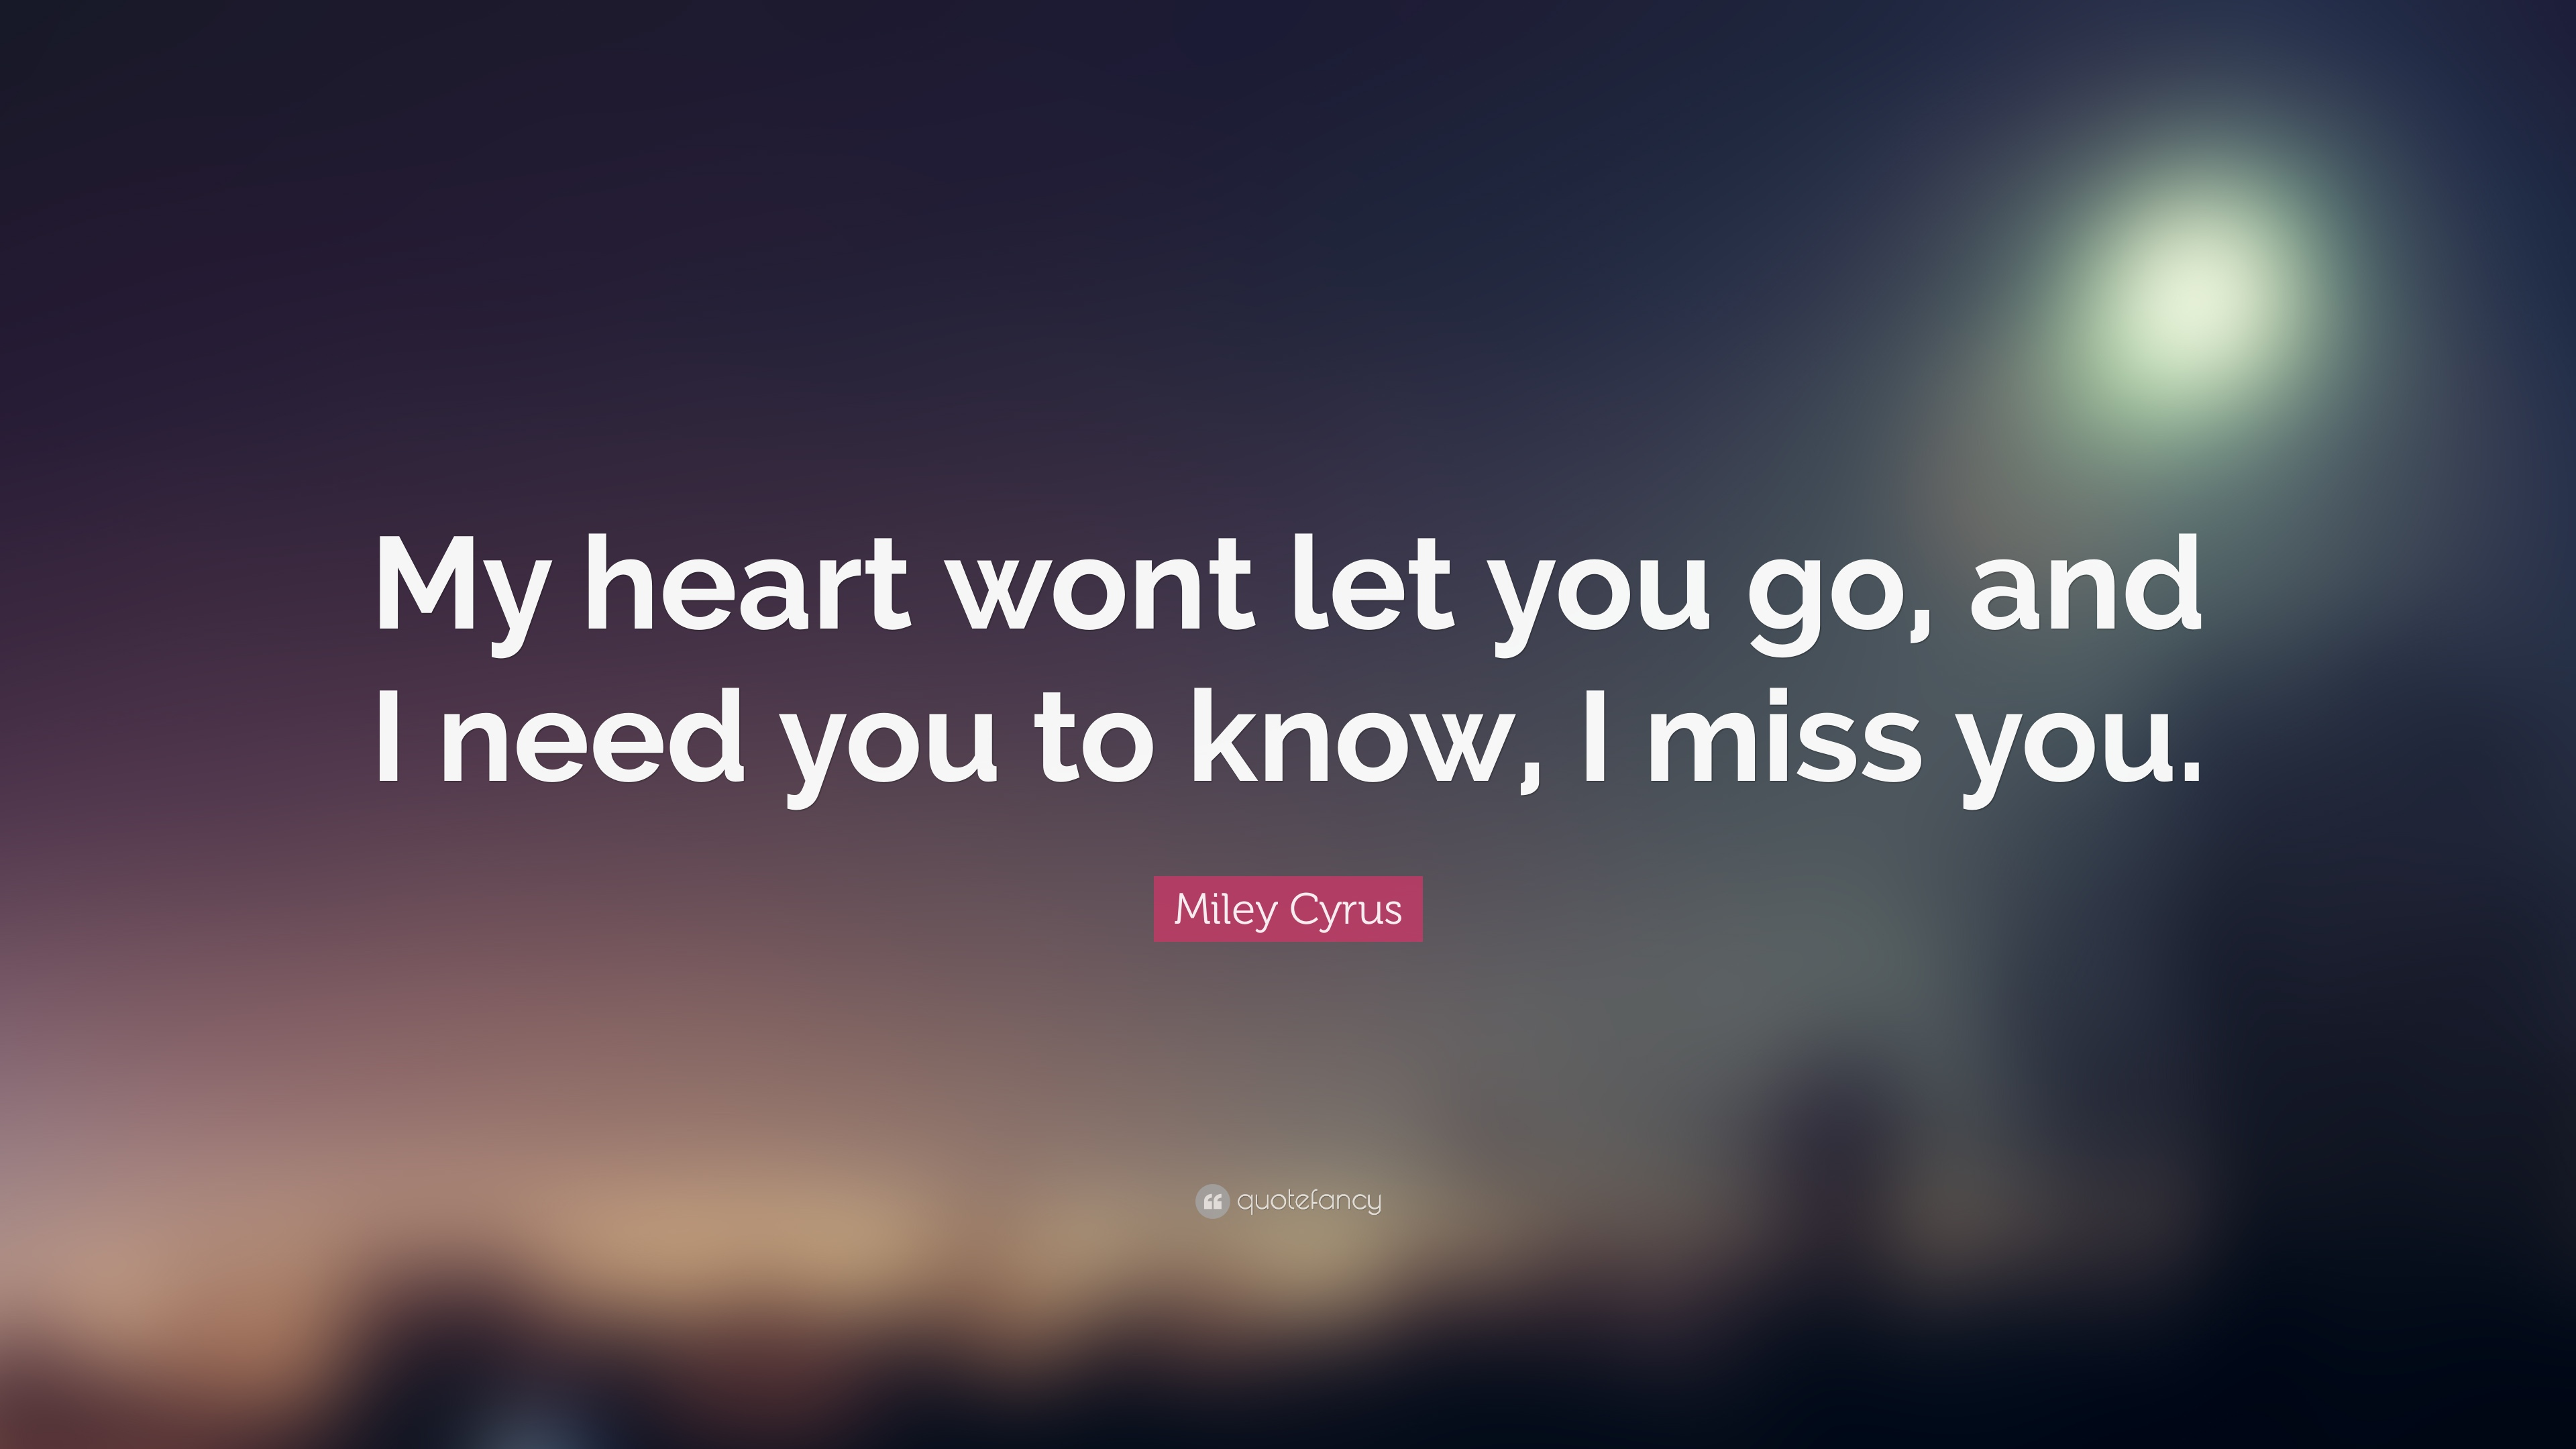 Miley Cyrus Quote My Heart Wont Let You Go And I Need You To Know